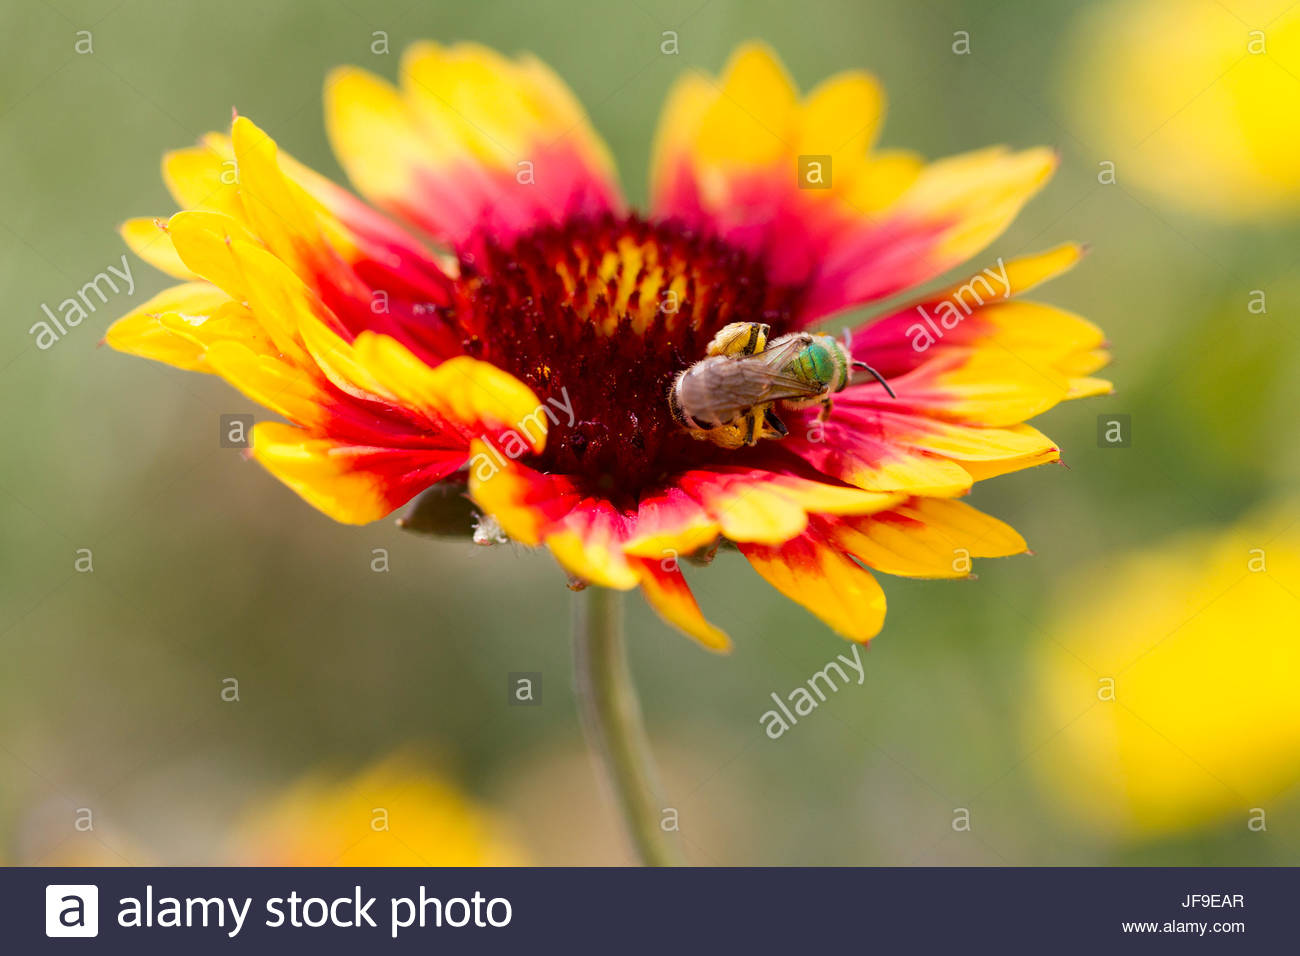 A bee collects pollen from an Indian blanket flower, Gaillardia pulchella. - Stock Image